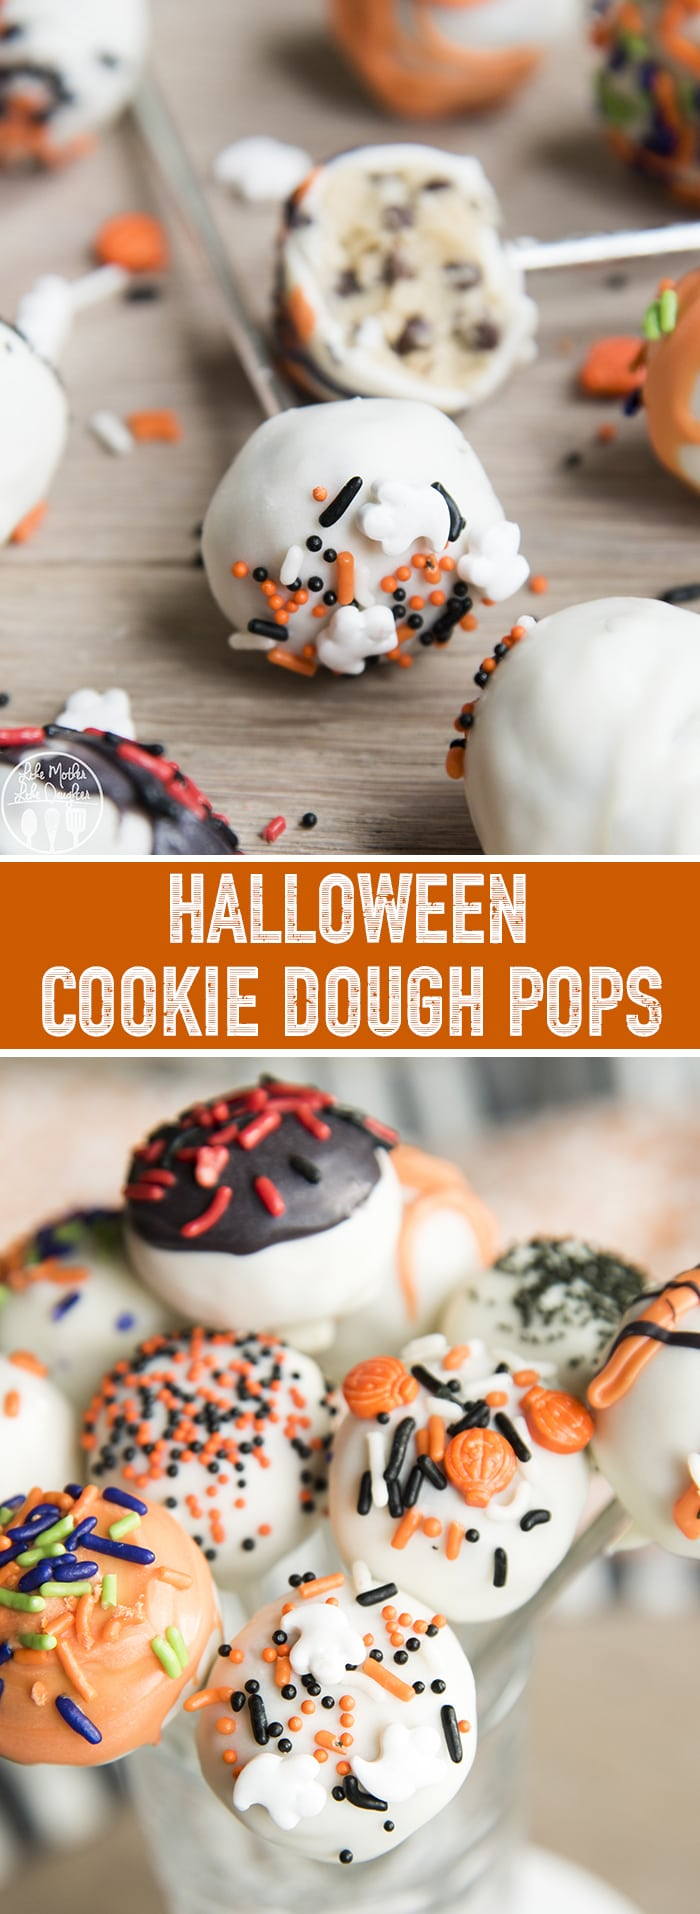 These Halloween Cookie Dough Pops are adorable and delicious bites of cookie dough dipped in white chocolate and decorated with Halloween sprinkles for the perfect Halloween treat!